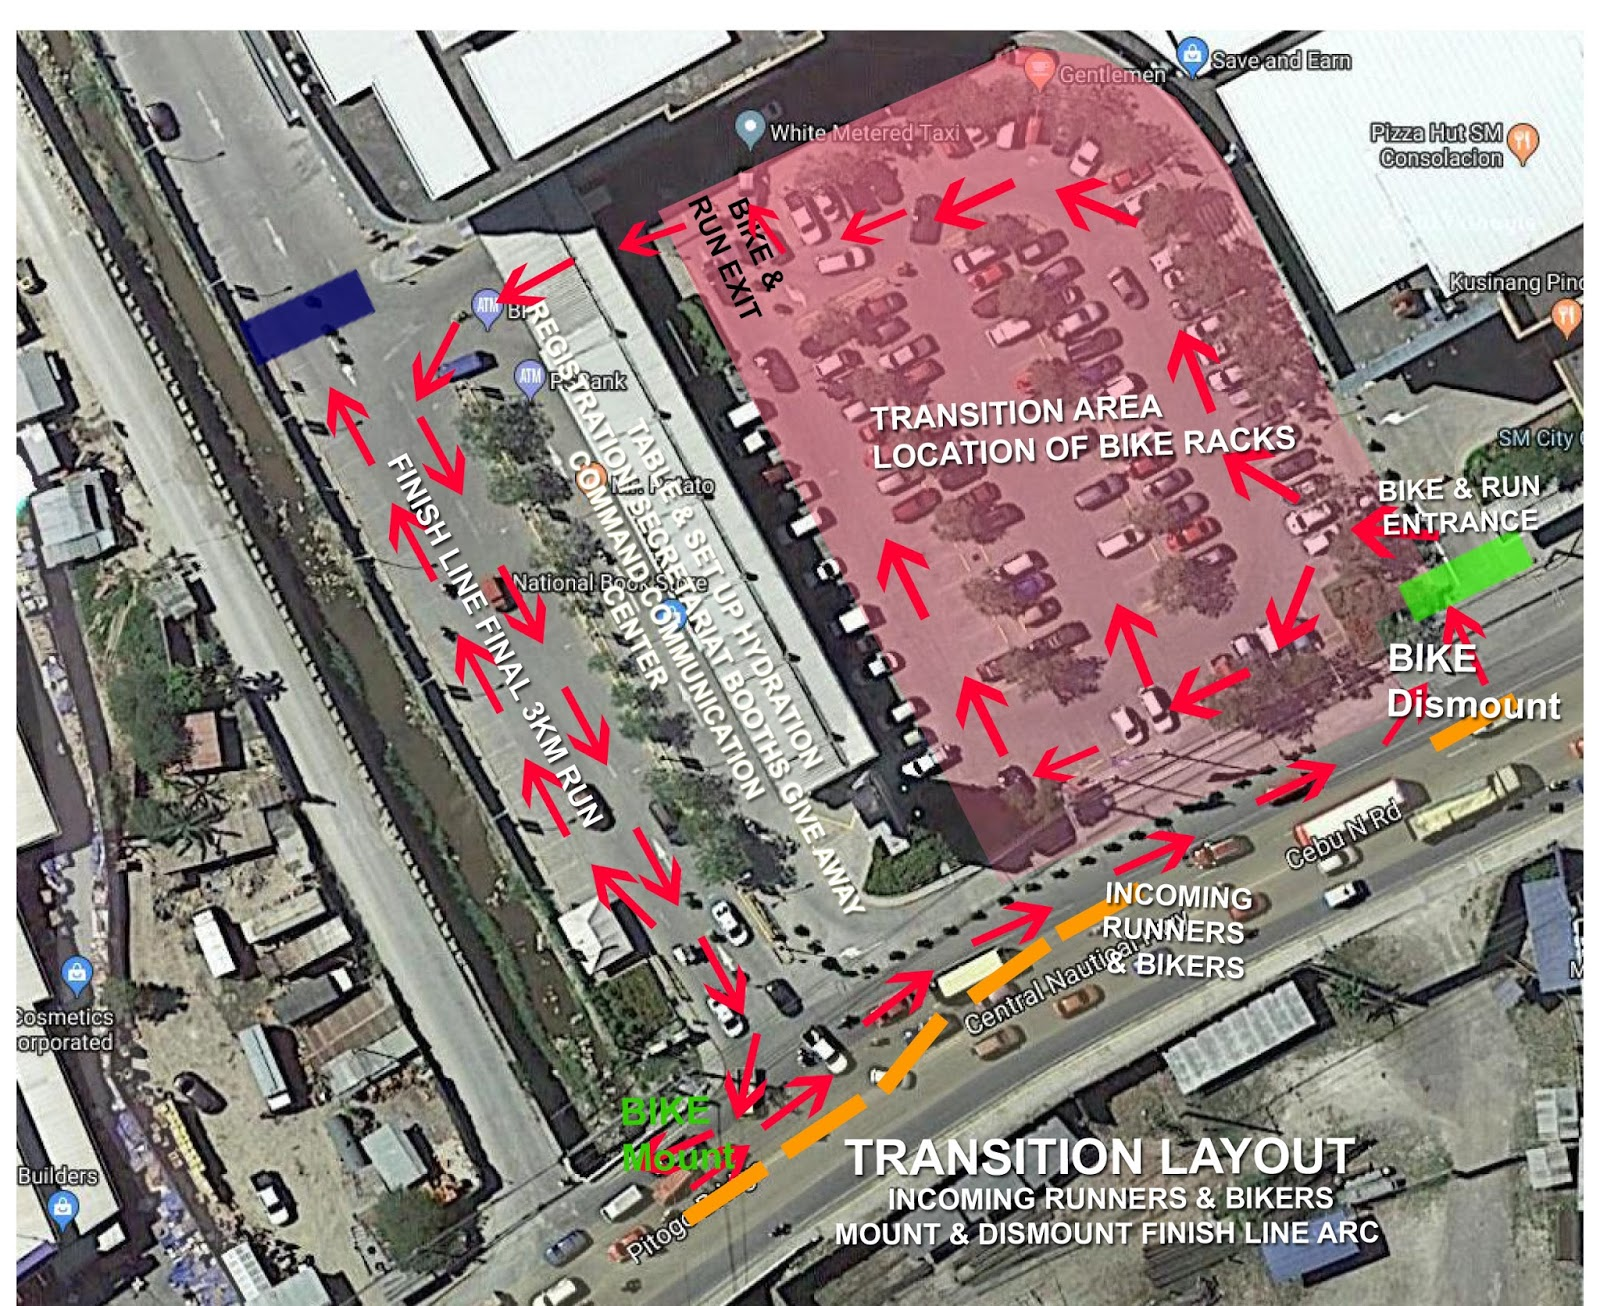 LAYOUT FOR TRANSITION INCOMING AND EXIT CONSOLACION MAP SM CITY copy.jpg